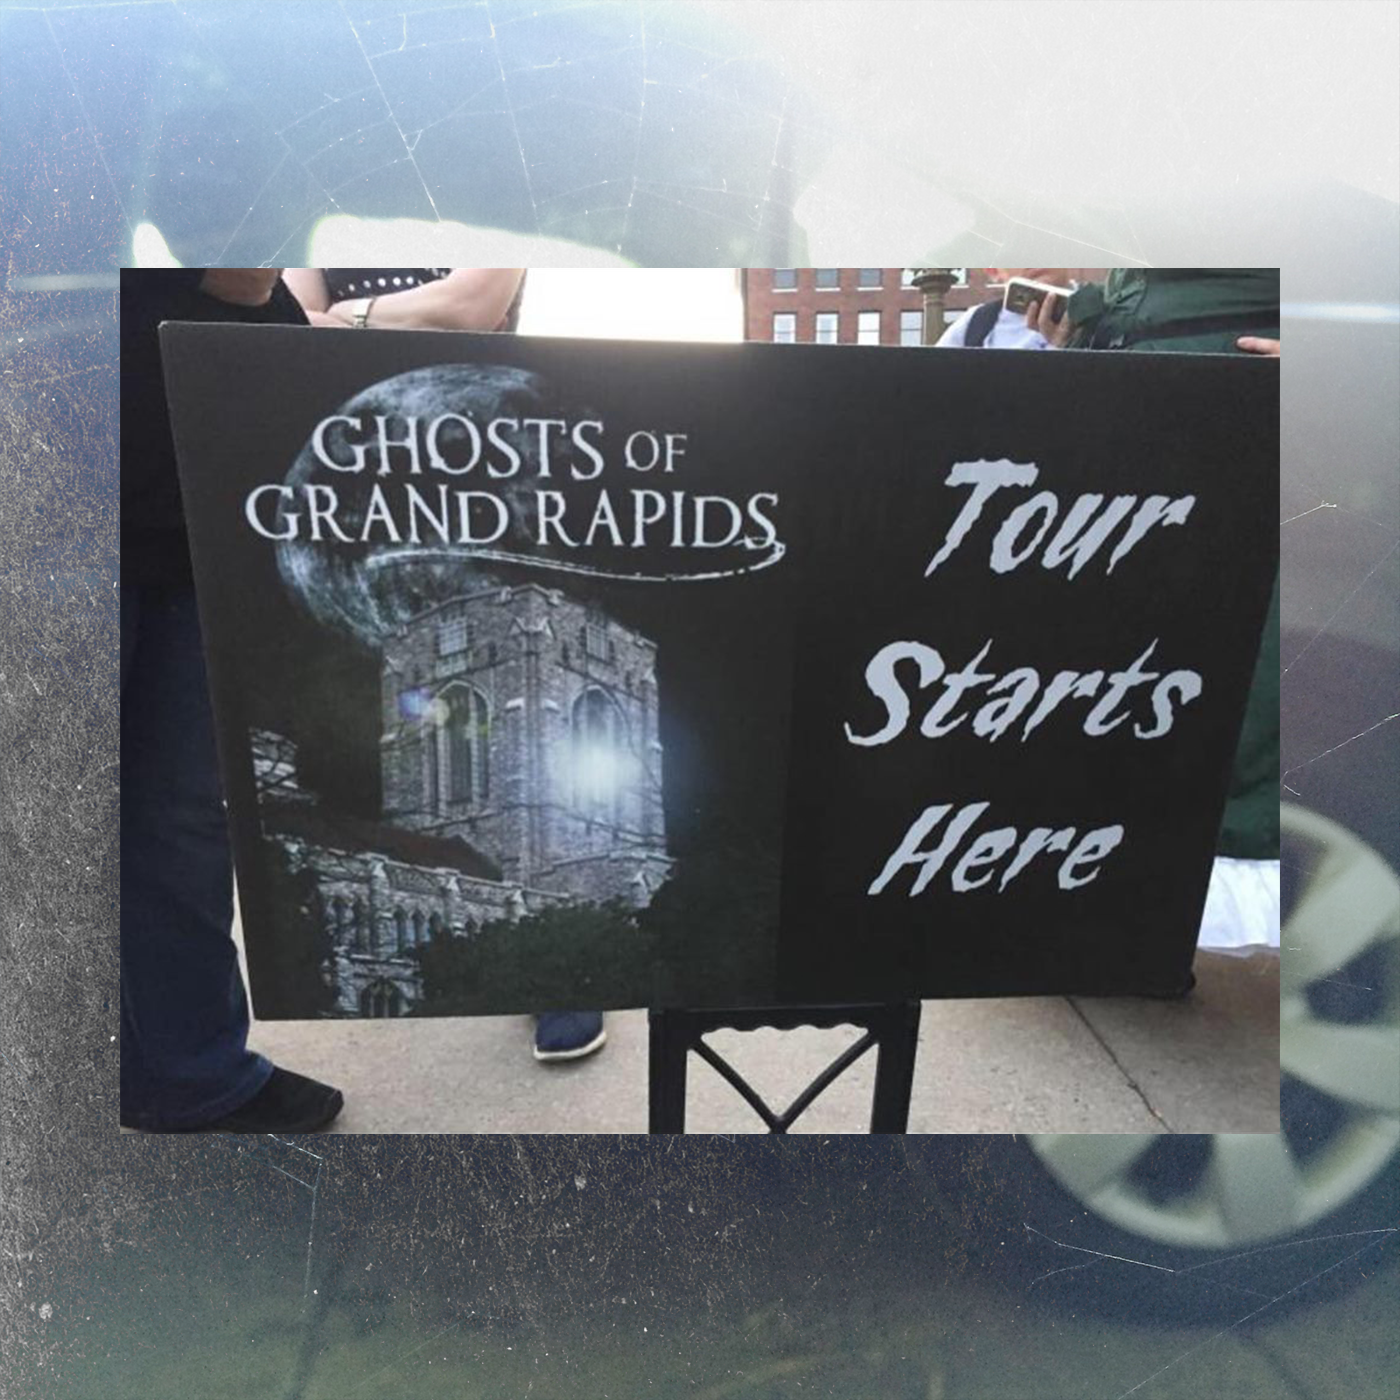 Ghosts of Grand Rapids Tour